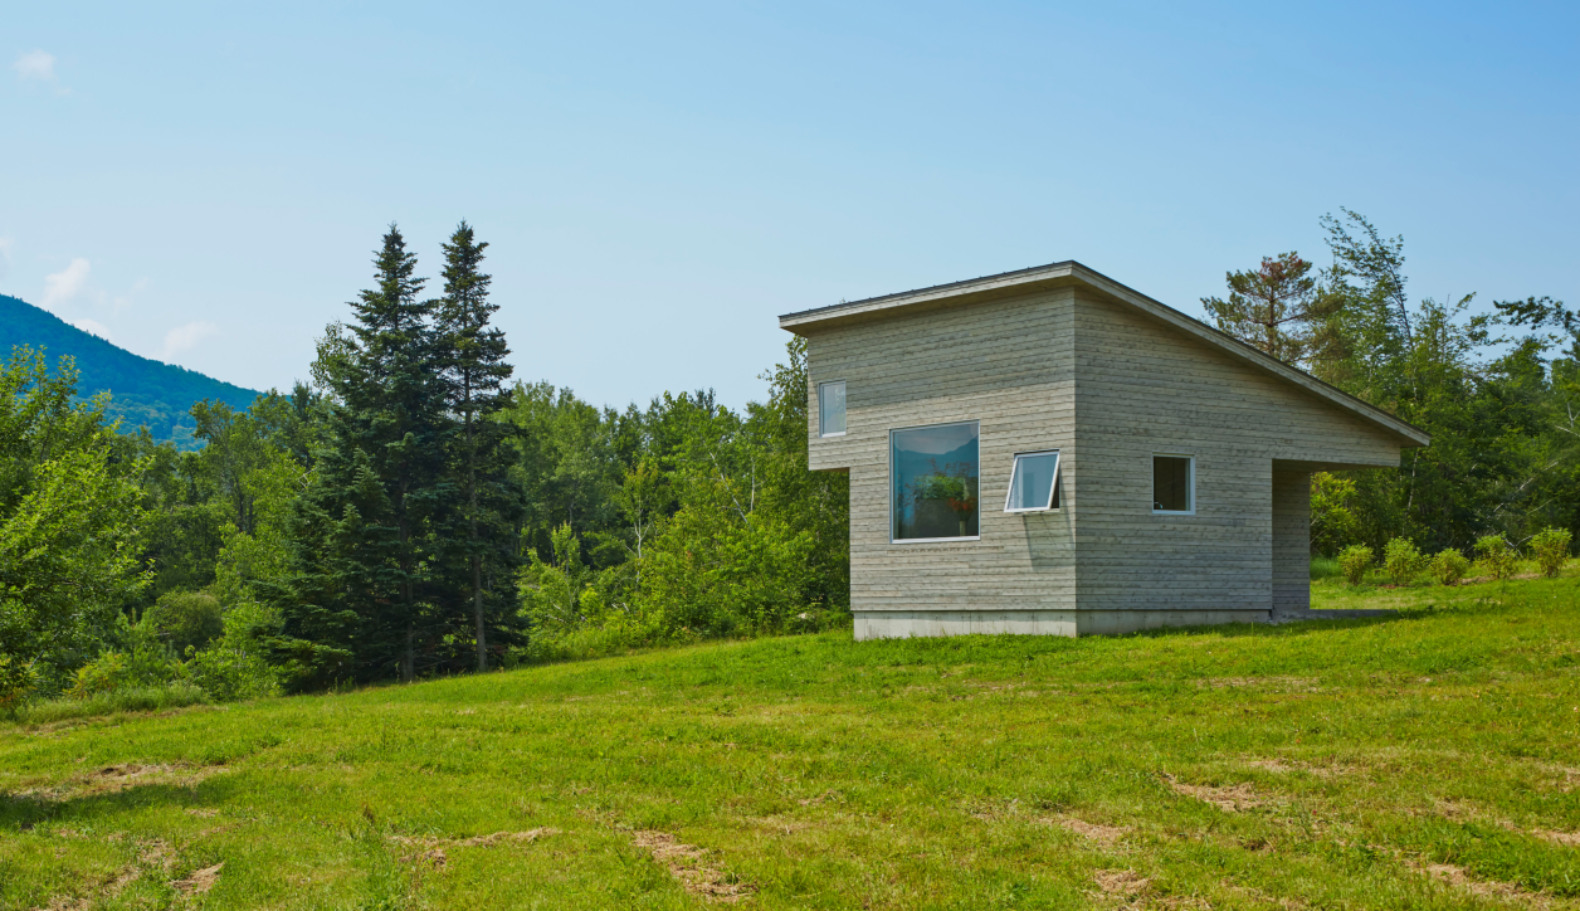 The peaceful Micro House serves as an artist's refuge in Vermont